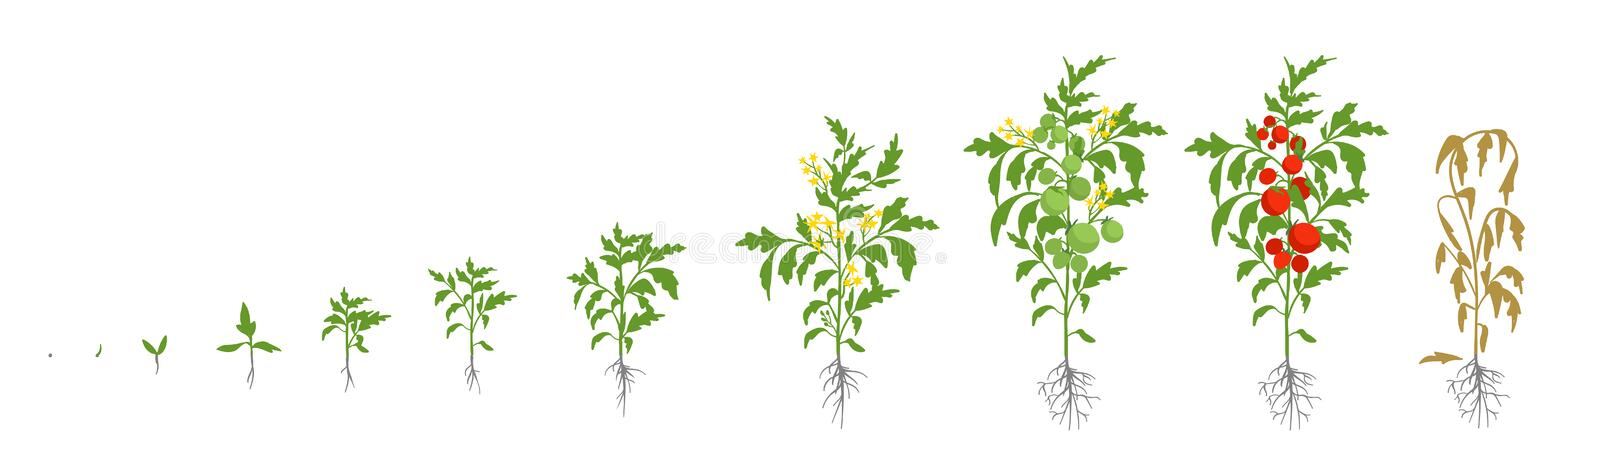 Growth stages of tomato plant. Vector illustration. Solanum lycopersicum. Ripening period. From sprout to bush with. Fruits. The life cycle of the tomatoes stock illustration